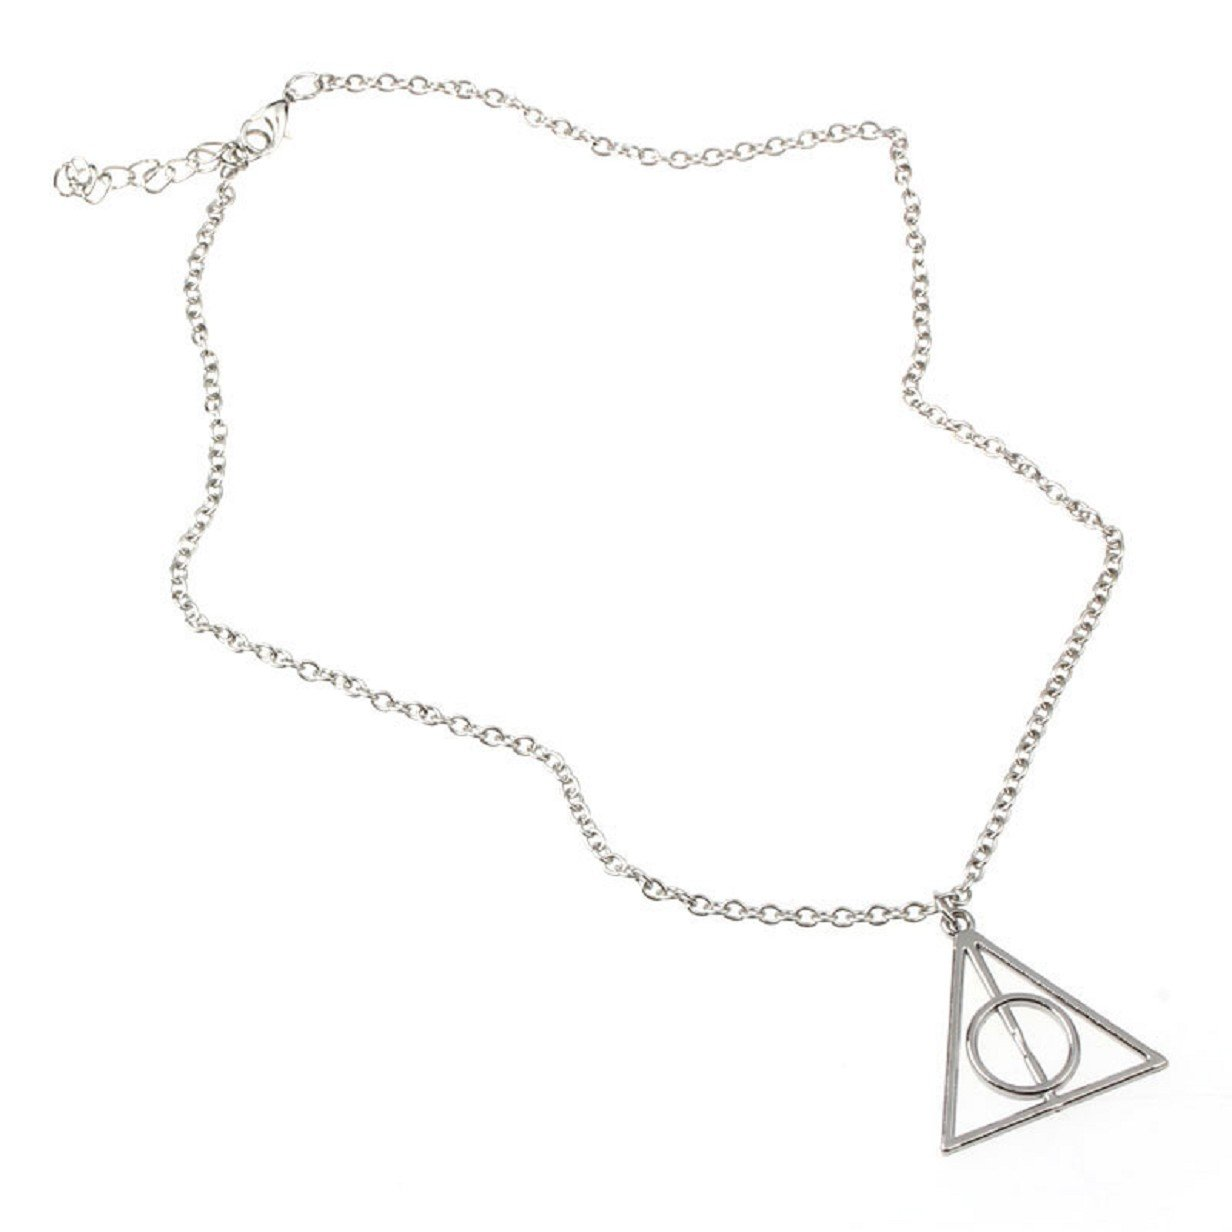 ABC® Fashion Retro Triangle Pendant Jewelry Necklace Lovely Gift бордюр fap roma greca pietra listello 8x25